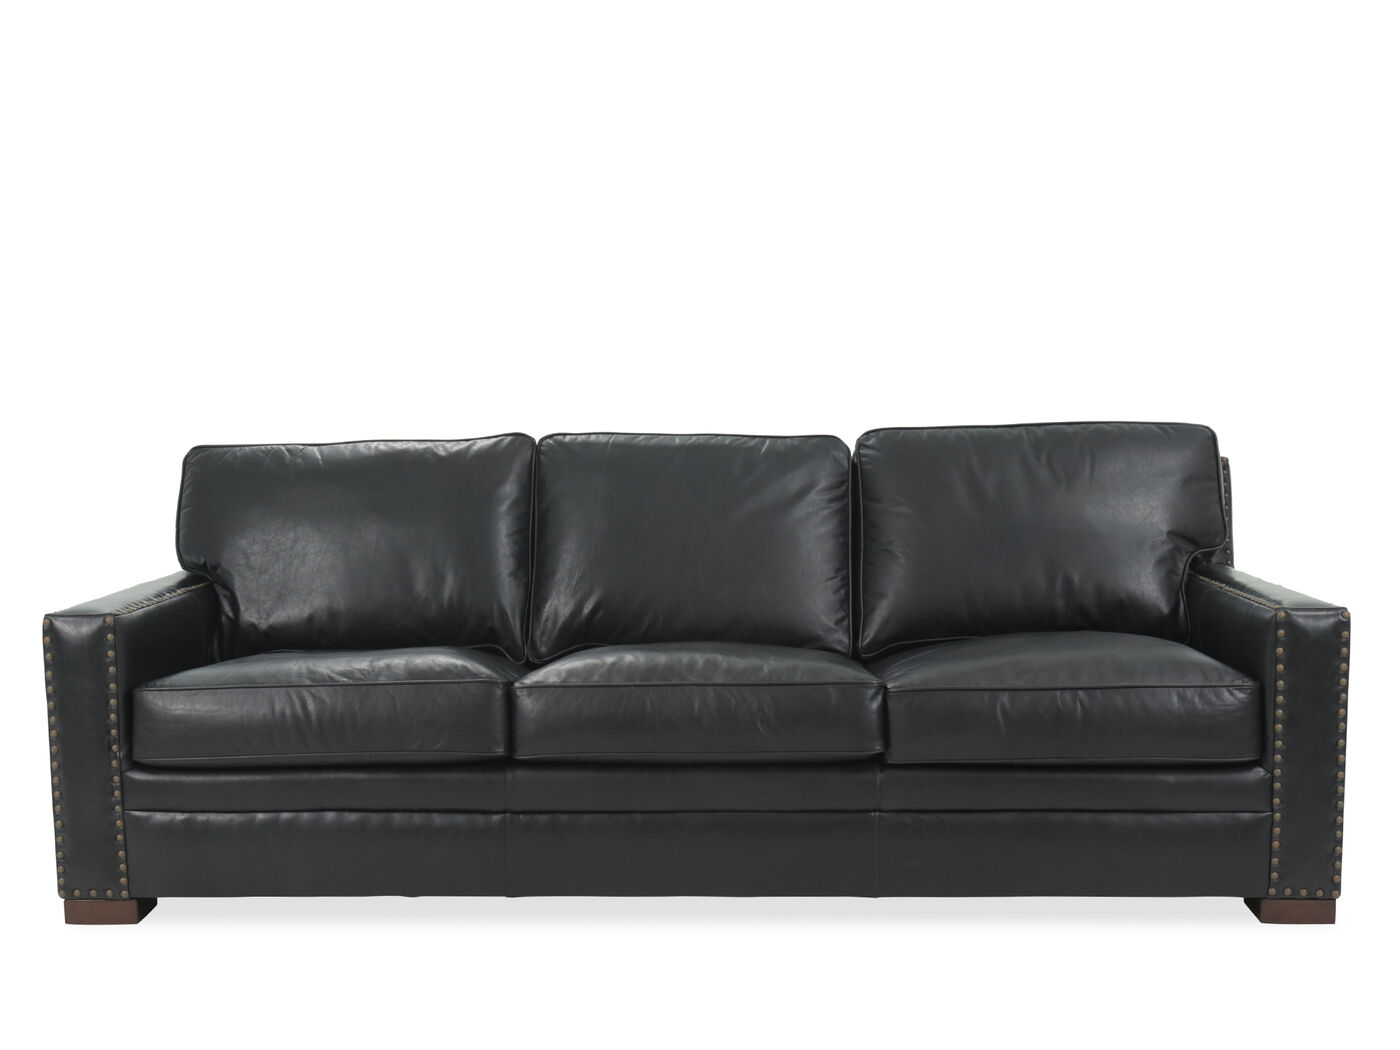 Nailhead Accented Leather Sofa In Black Mathis Brothers Furniture ~ Leather Sofa With Nailheads